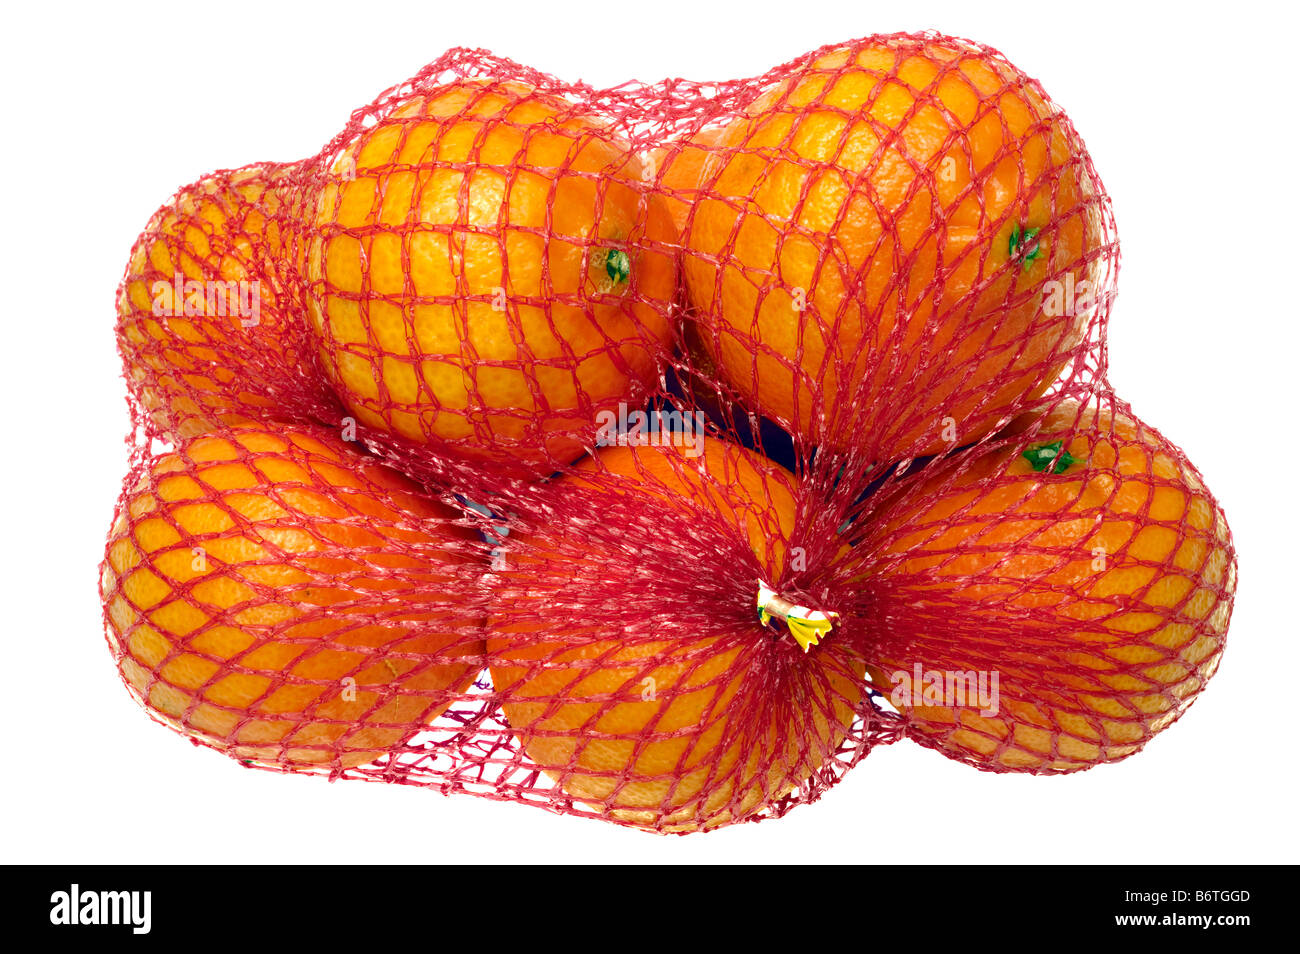 A pack of Clementines in a red mesh net bag - Stock Image